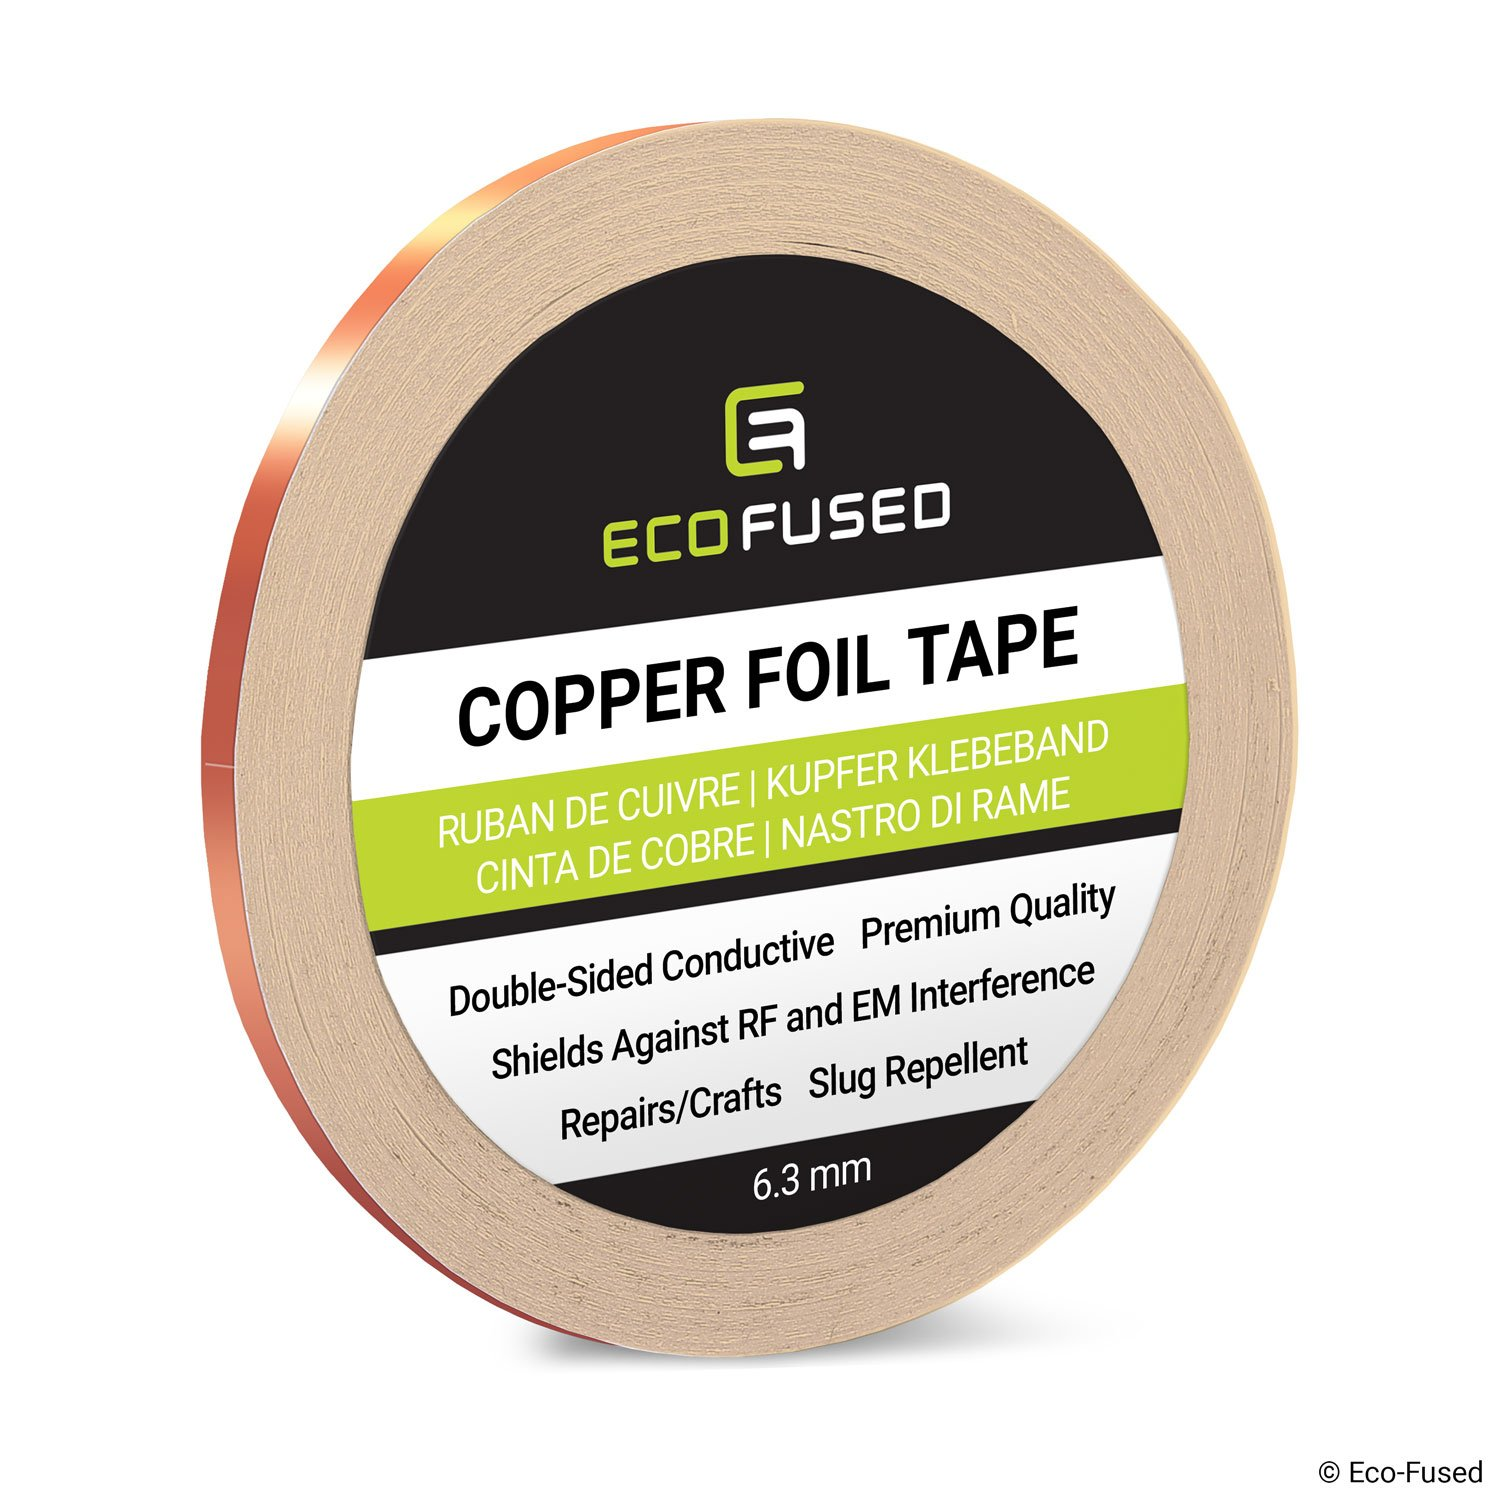 Premium Adhesive Copper Foil Tape - Double-Sided Conductive - 0.25 inch (6.3 mm) - EMI and RF Shielding, Paper Circuits…